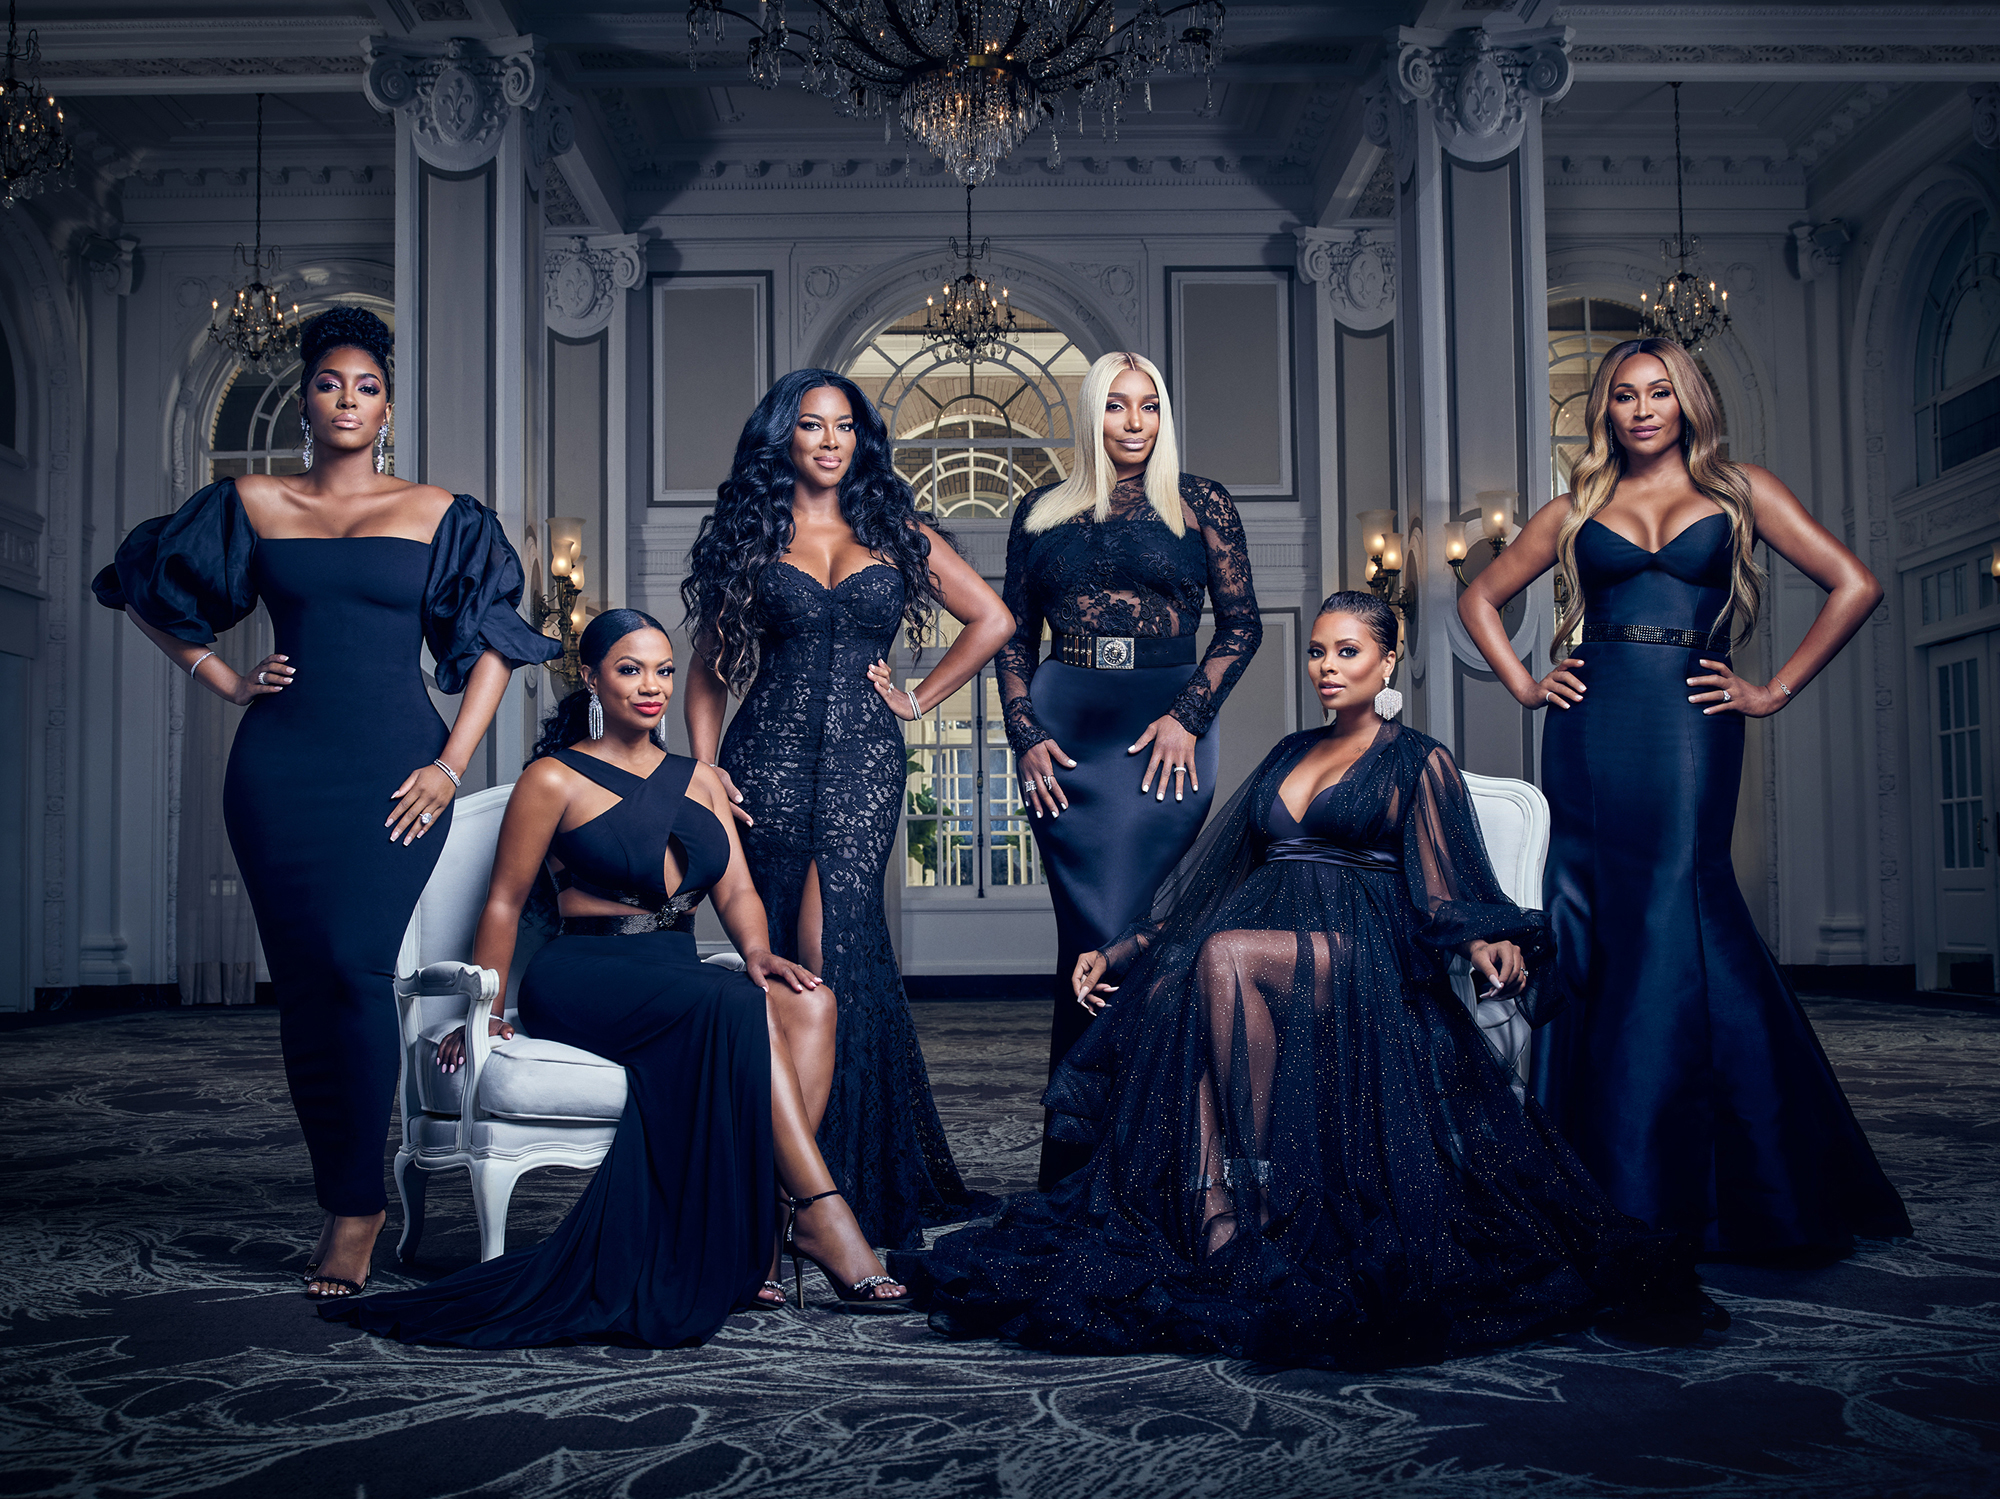 Rhoa Season 12 7 Things To Know Before The Premiere